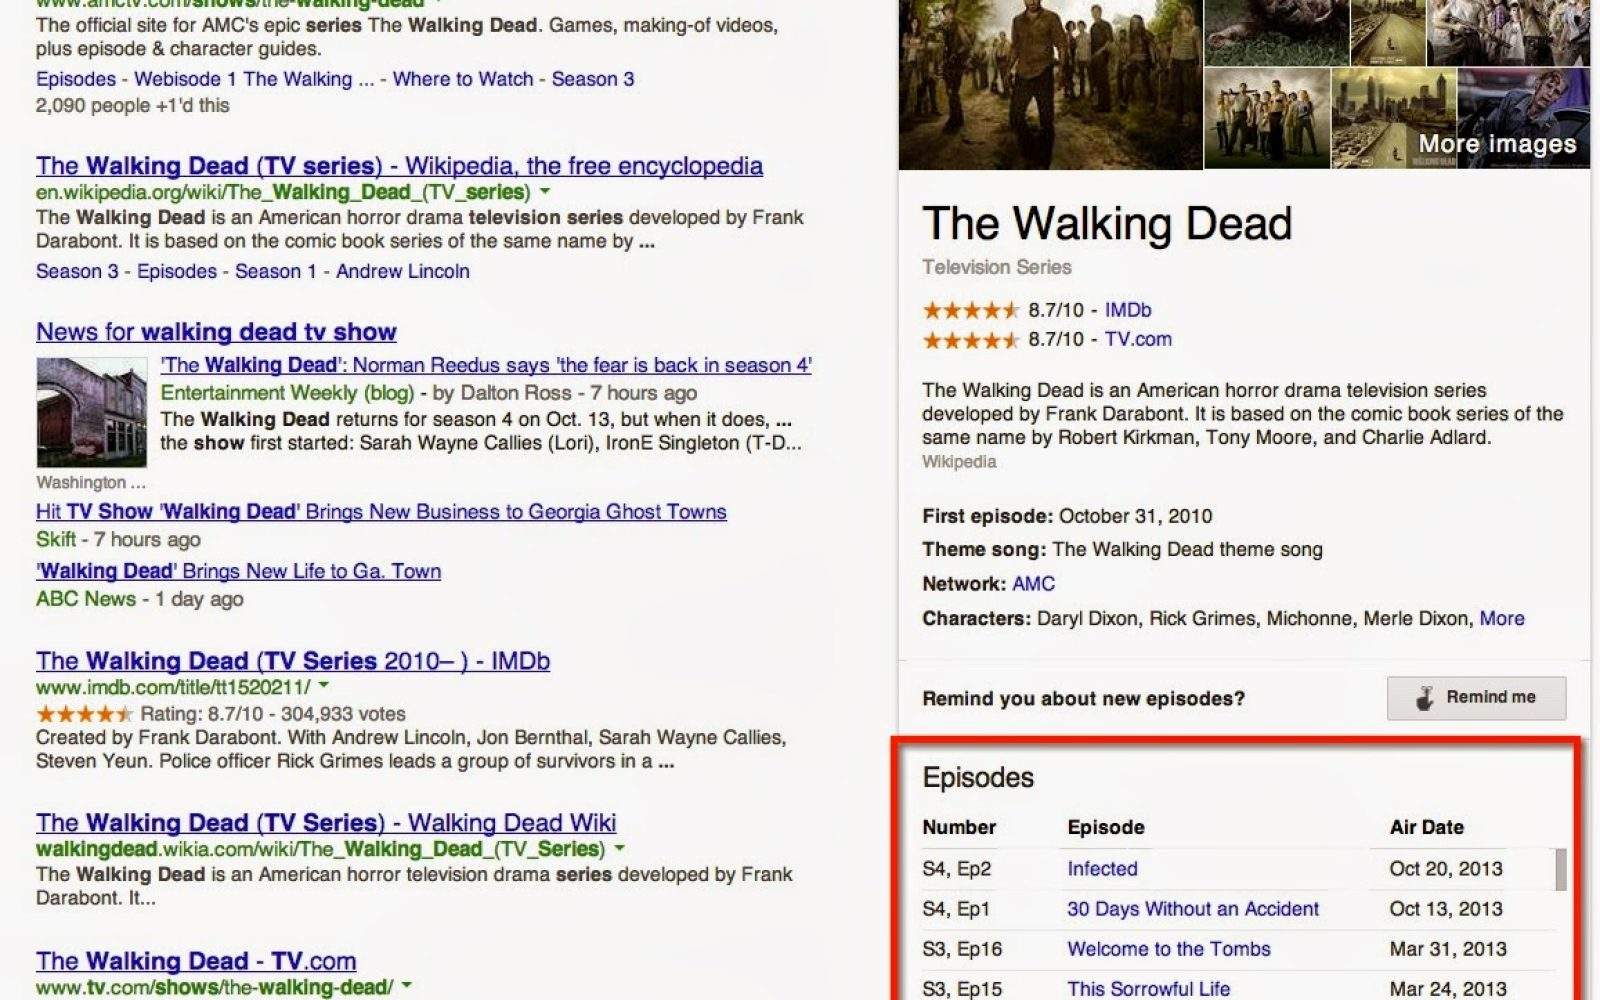 Google adds TV Show episode listings to search results